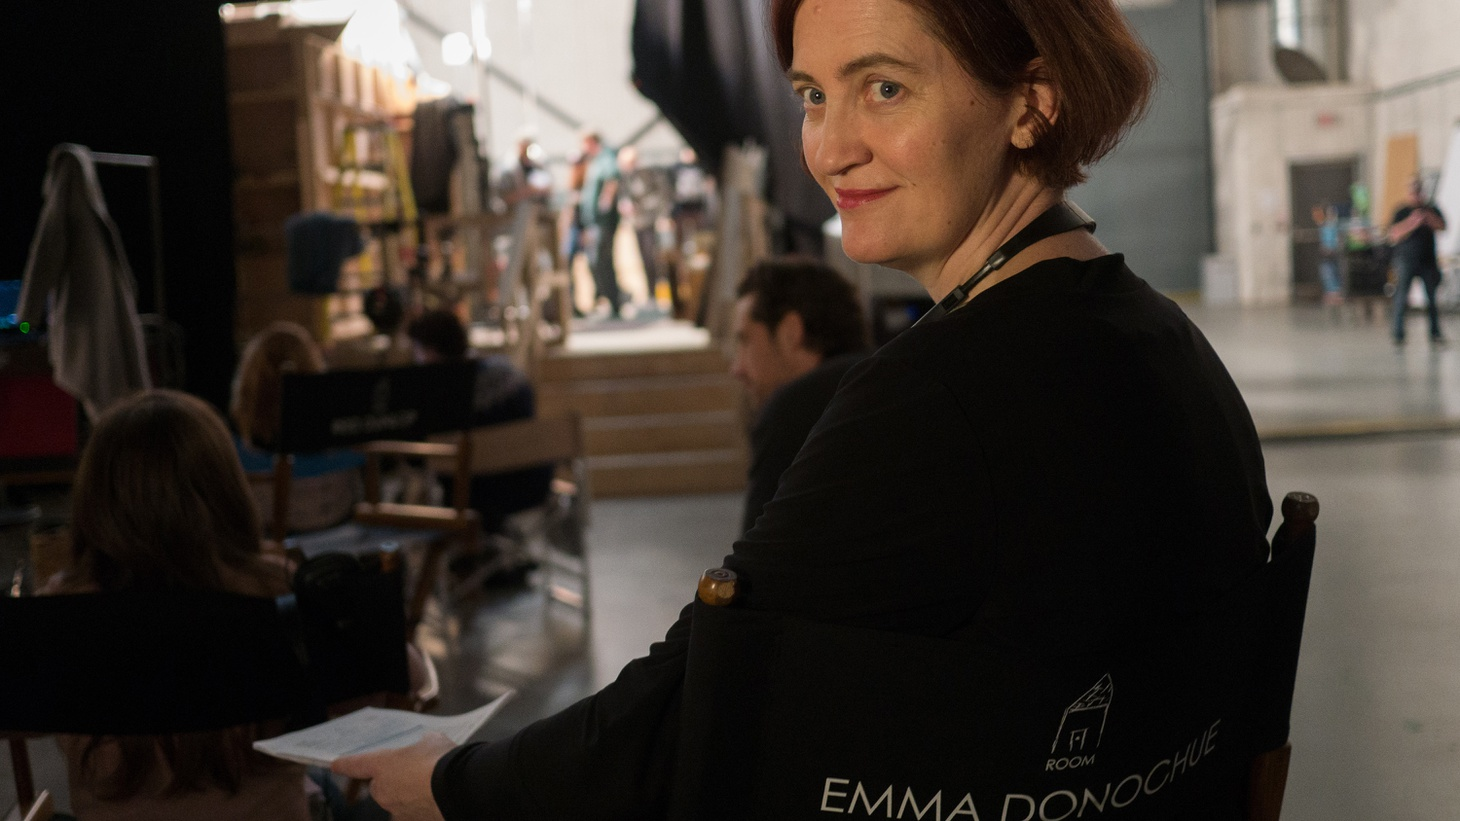 Director Lenny Abrahamson didn't expect author Emma Donoghue would choose him to make a film based on her bestselling novel Room. Abrahamson tells us how he made his pitch to Donoghue -- and she explains why it worked.